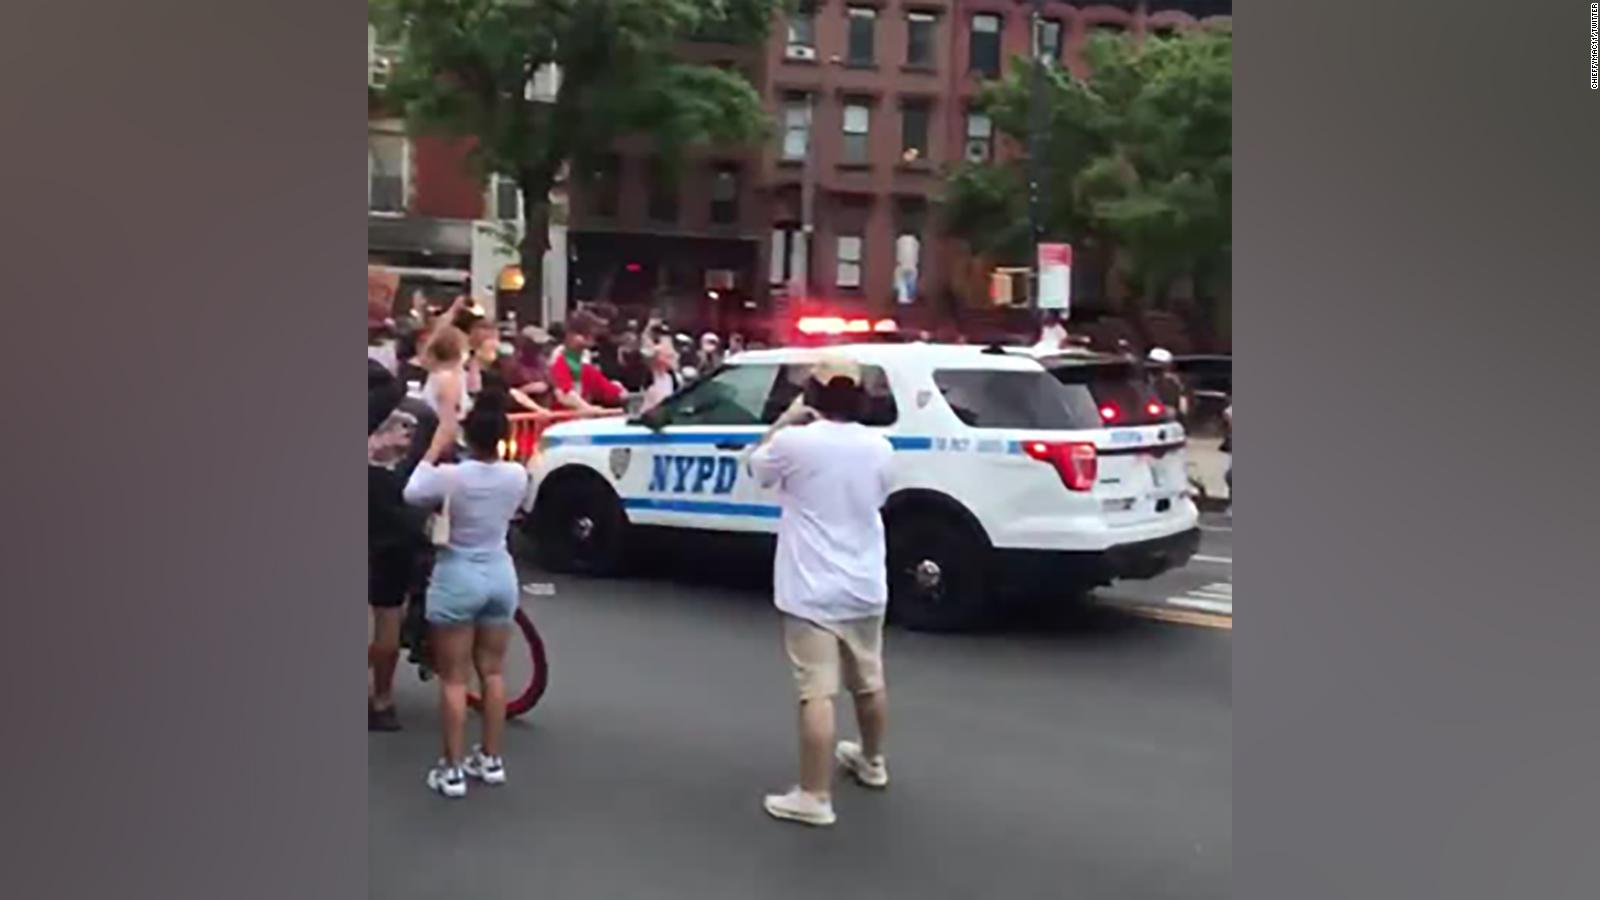 Nypd Officer Hat Testing Roblox Police Push Back Using Rubber Bullets And Tear Gas On Floyd Protesters Cnn